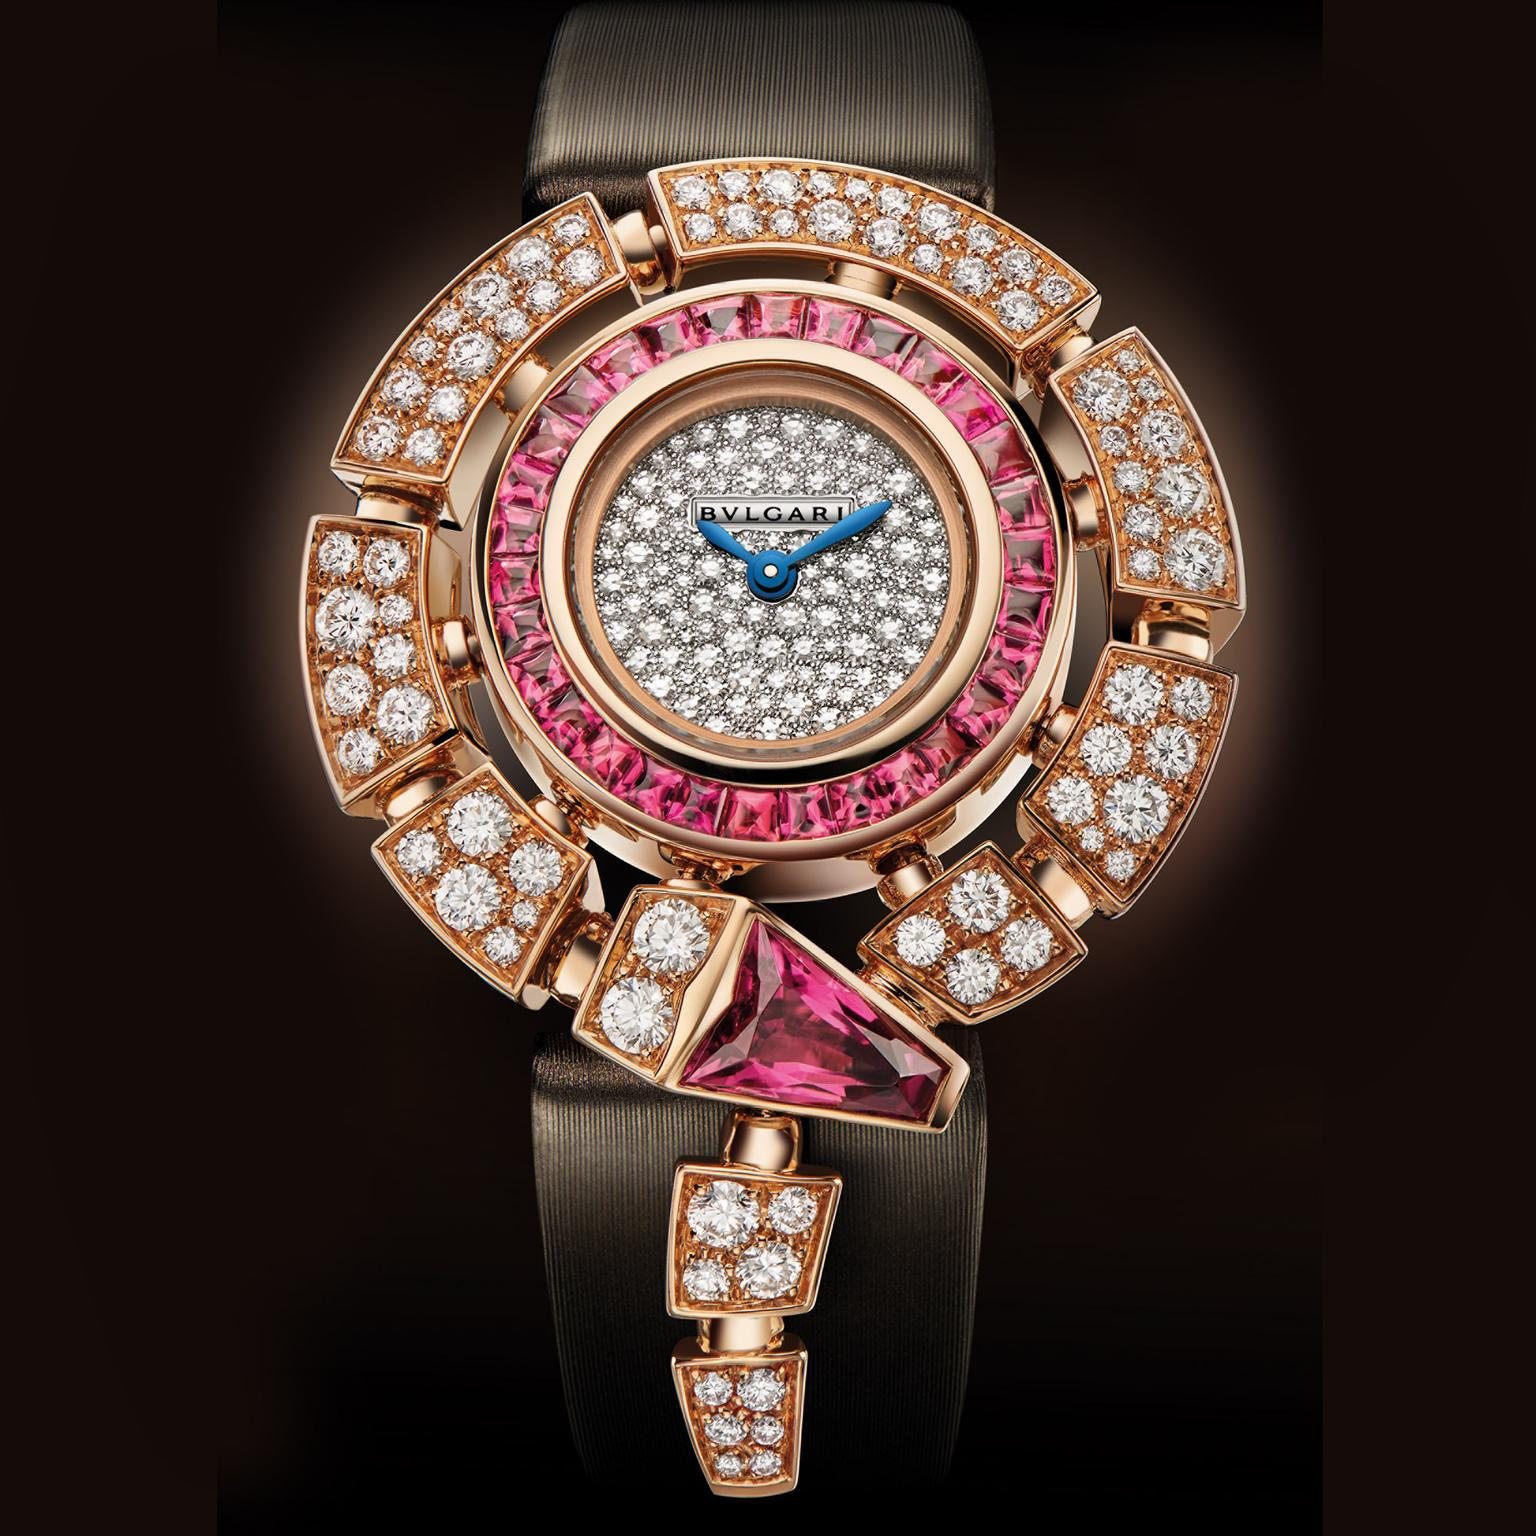 Bulgari Serpenti Incantati watch